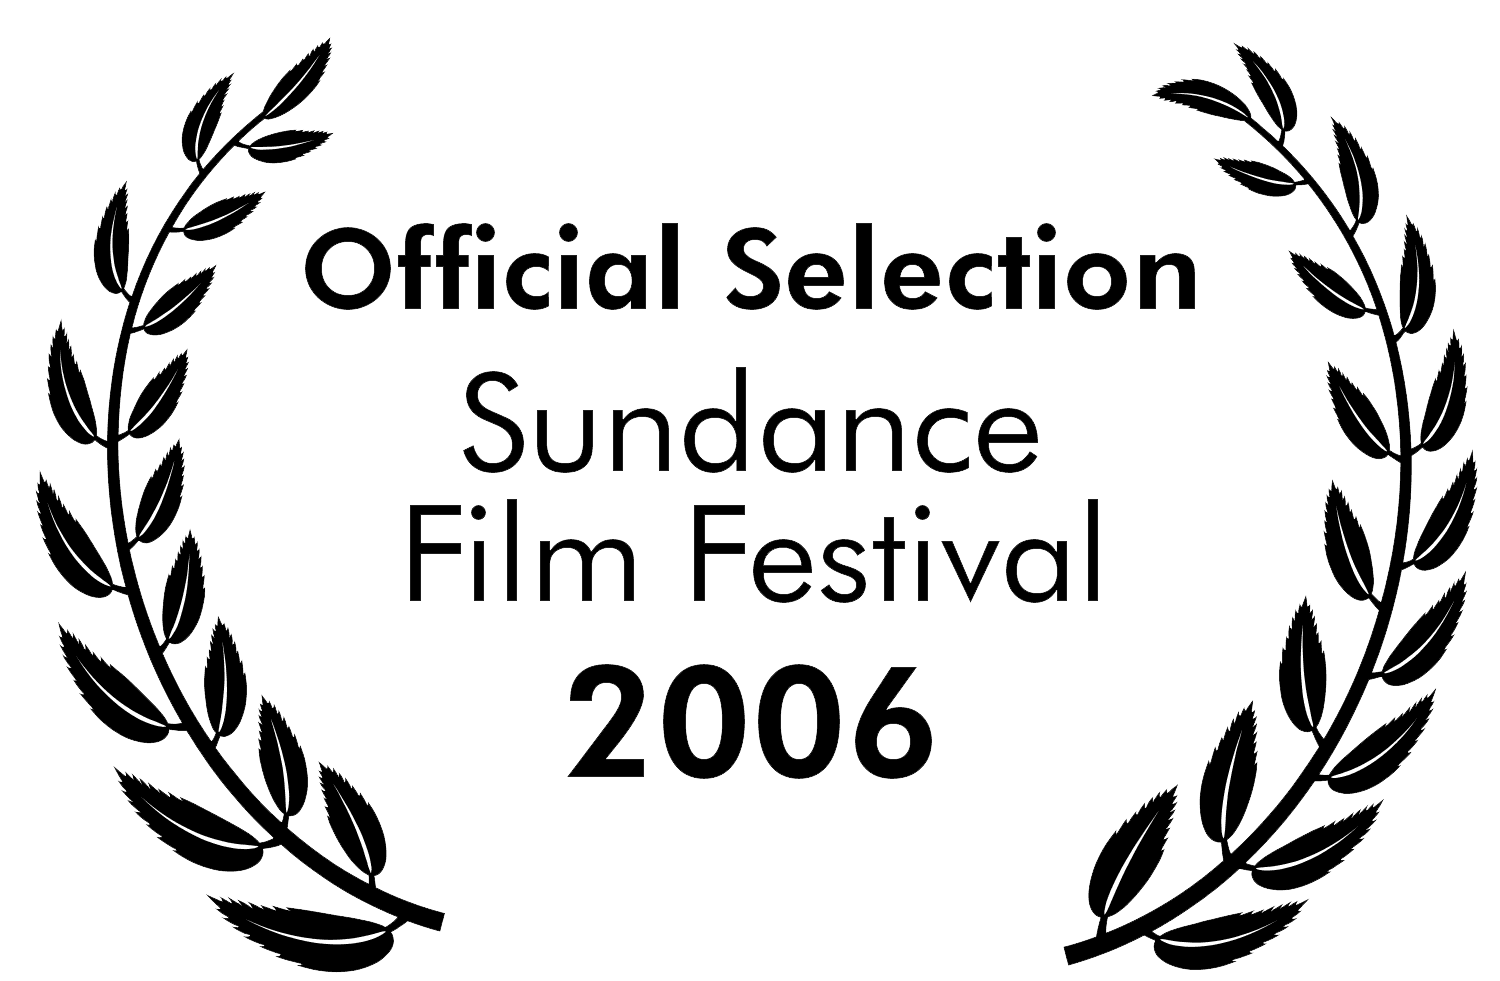 Sundance-transparent.png